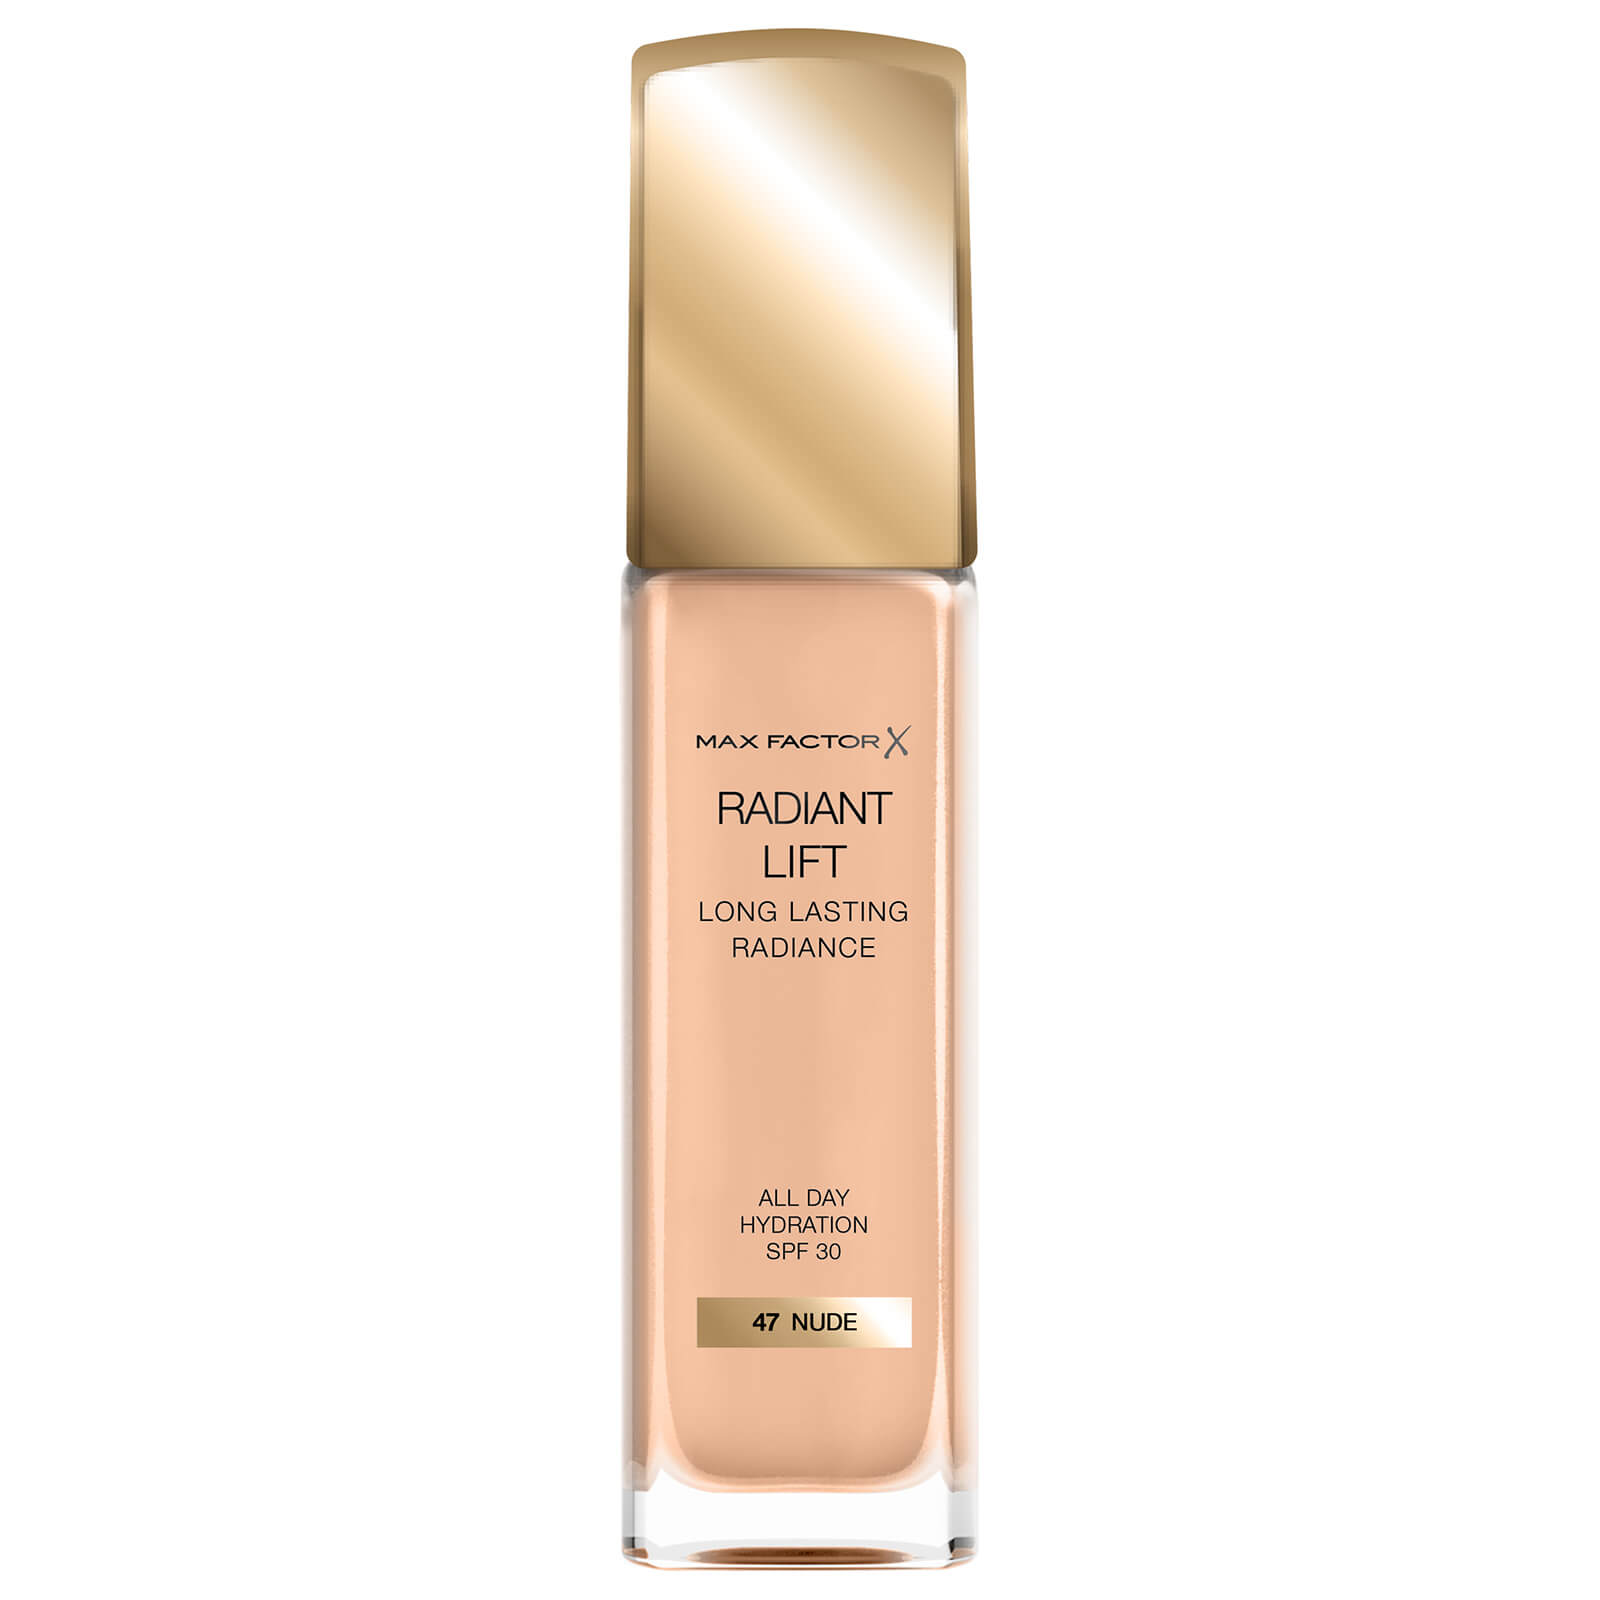 Max Factor Radiant Lift Foundation (Various Shades) - Nude